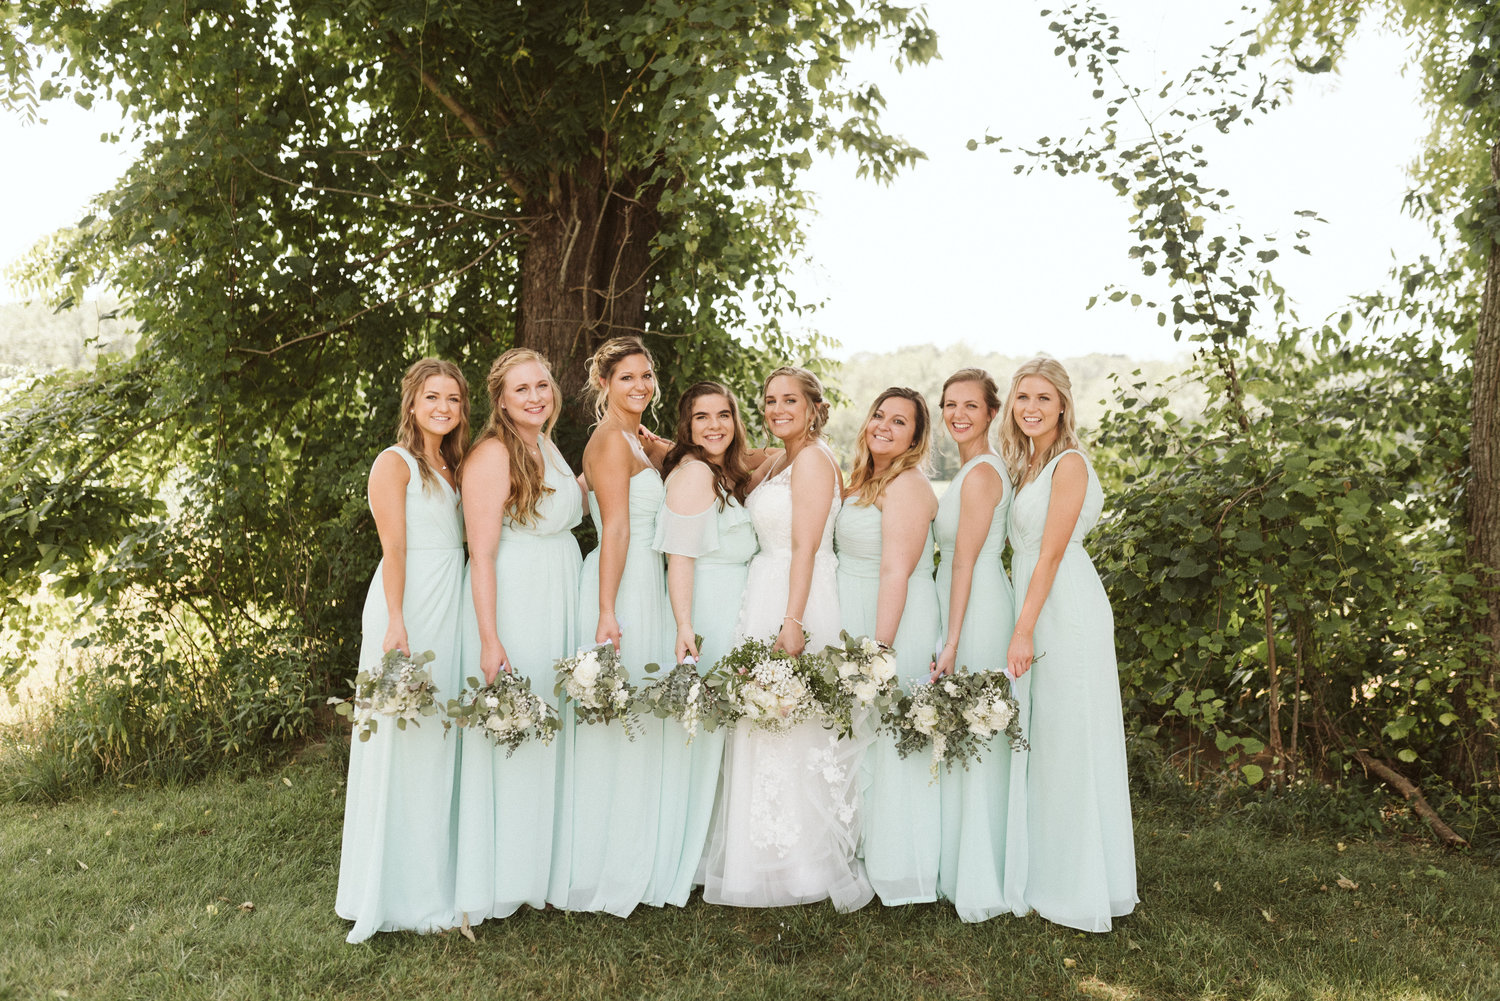 Flick+Wedding_Bridesmaids-8.jpg